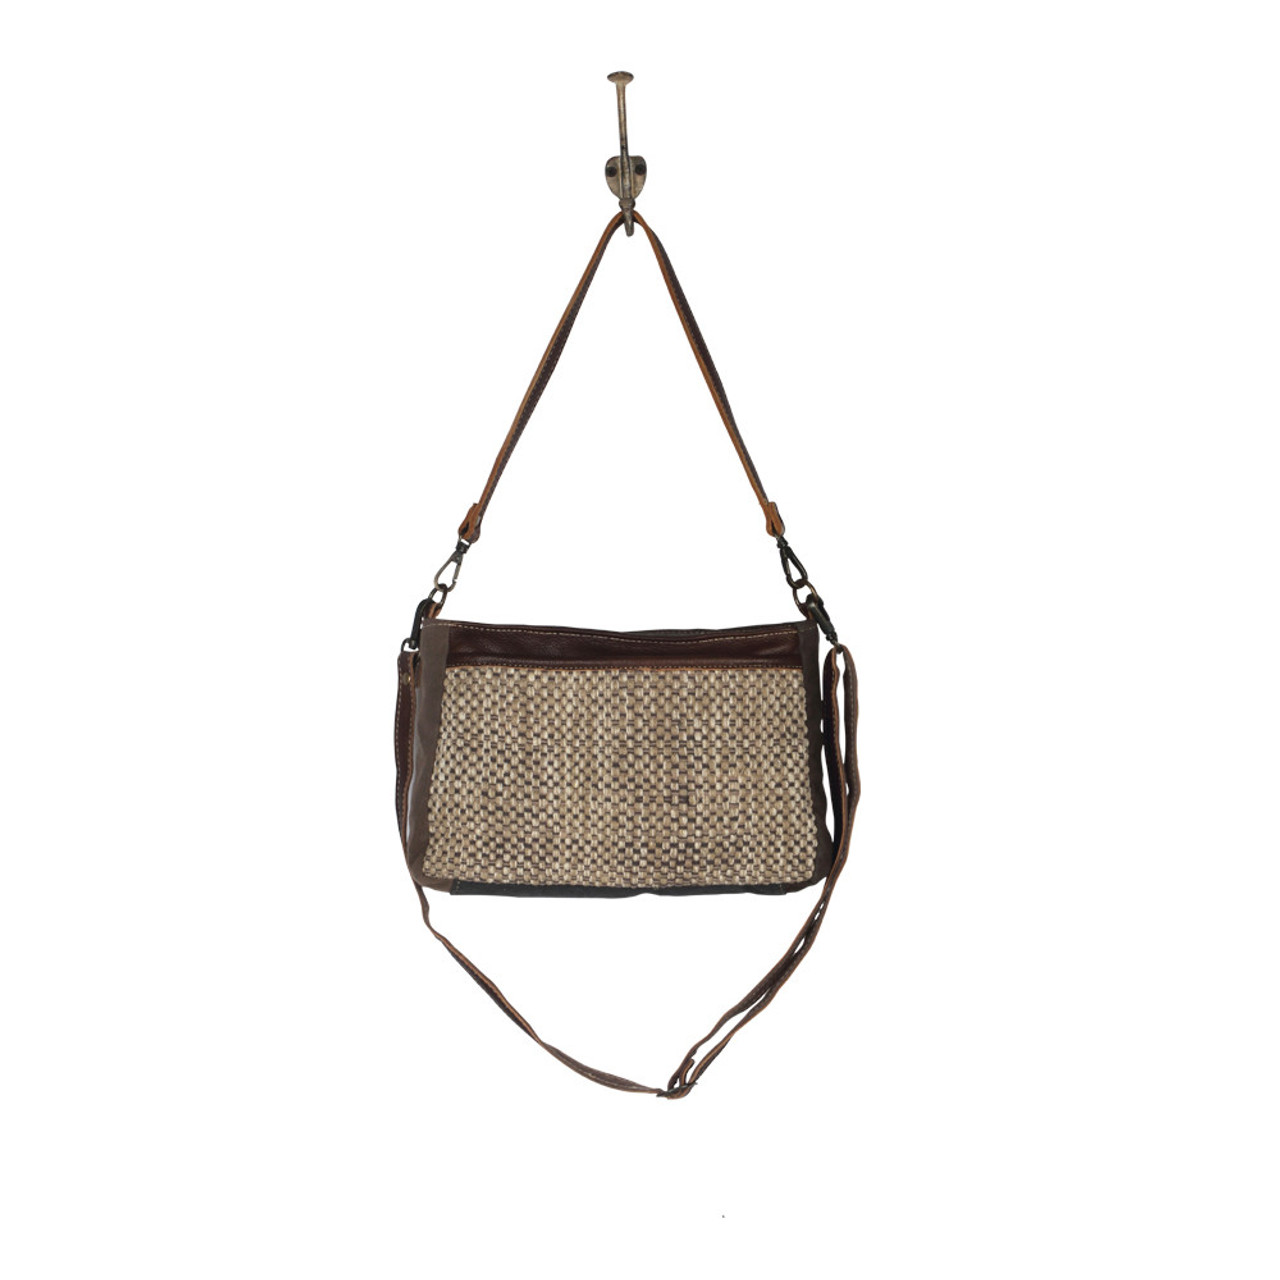 Leather, canvas & rug tote. The front has a neutral woven pattern with main zipper closure and a hidden large front pocket with zipper. The back is solid canvas, also with a hidden pocket and zipper. Interior has a single pocket with zipper. Included are two shoulder straps, one short and the other long with ability to adjust.